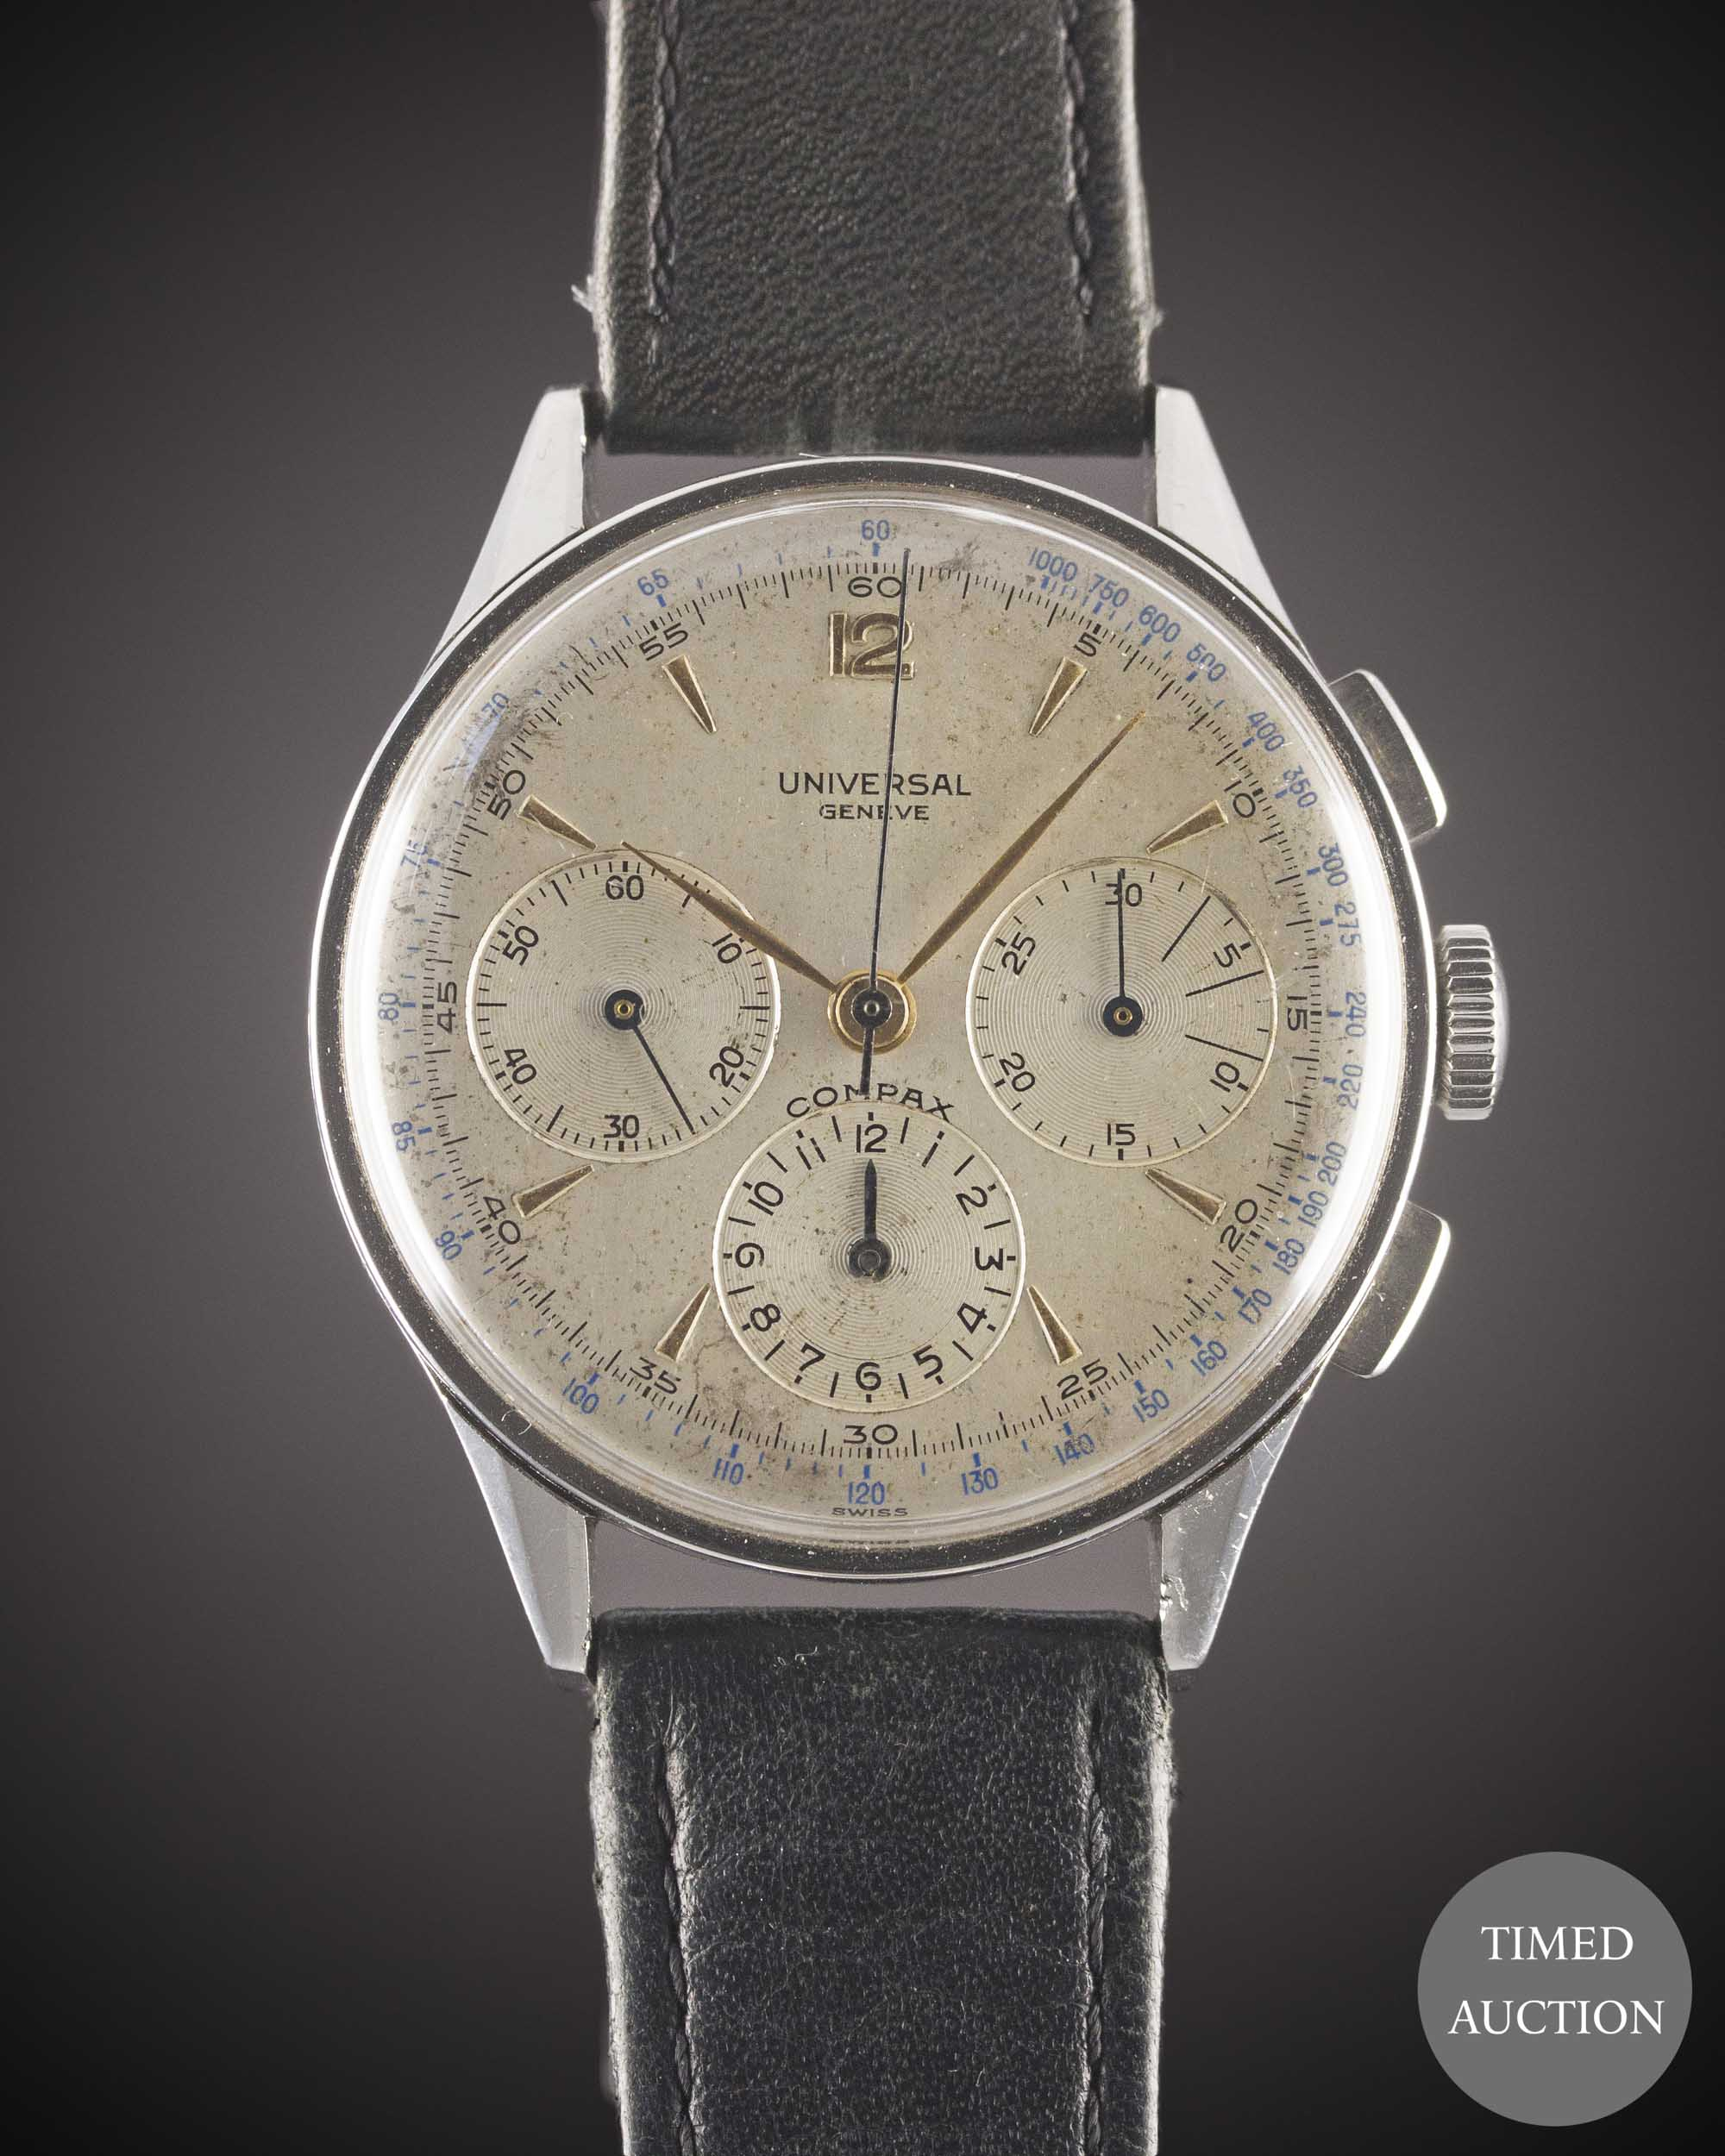 Lot 24 - A GENTLEMAN'S LARGE SIZE STAINLESS STEEL UNIVERSAL GENEVE COMPAX CHRONOGRAPH WRIST WATCH CIRCA 1950,